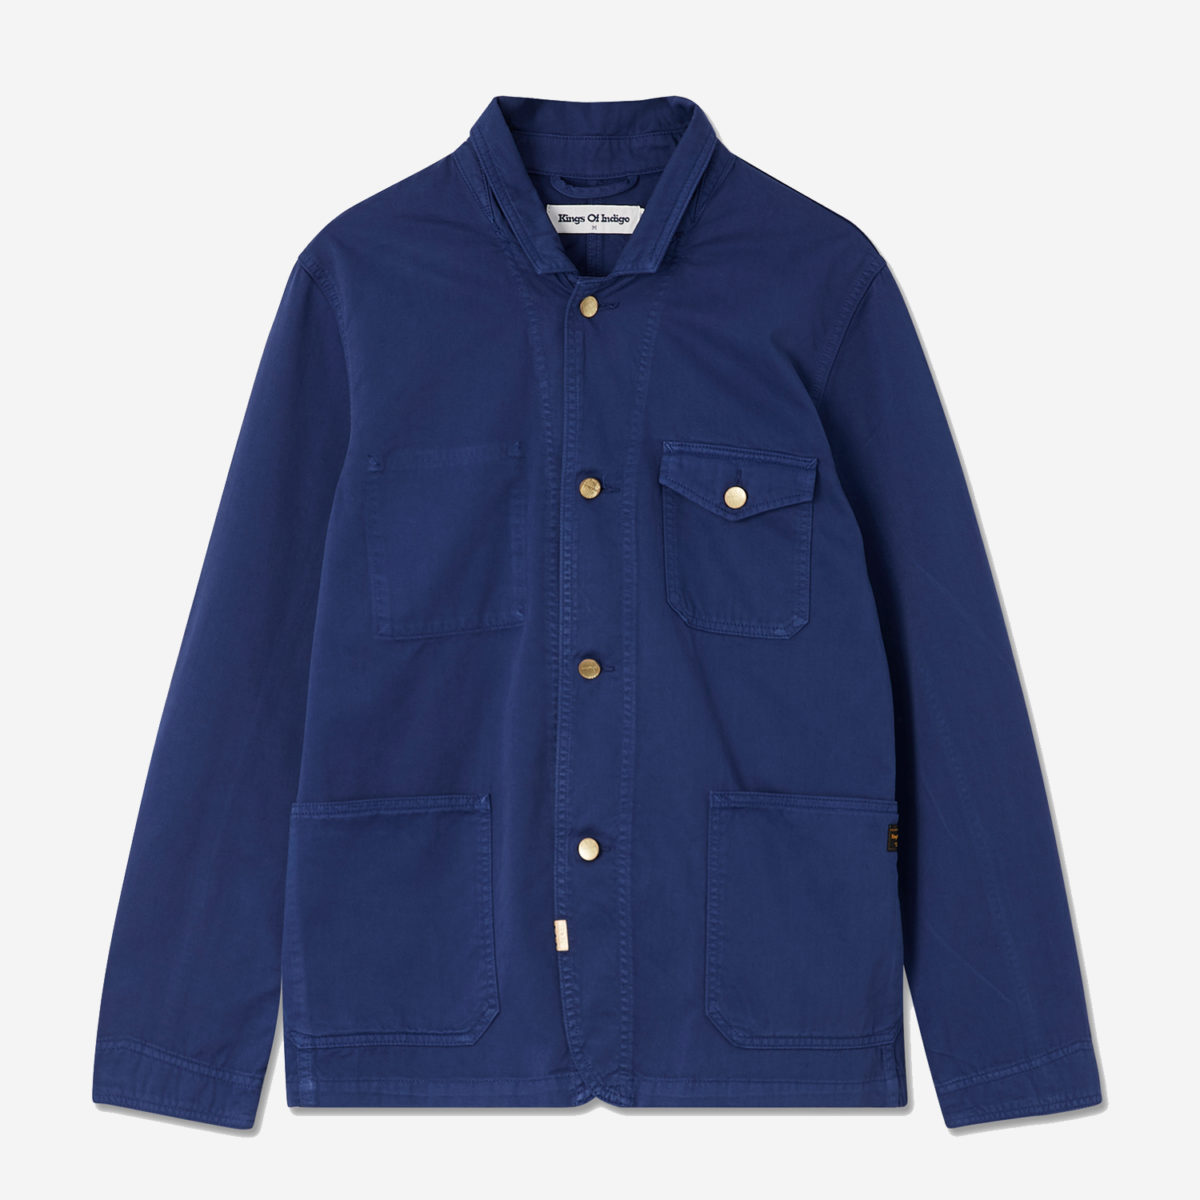 David Jacket Navy - KOI Kings of Indigo